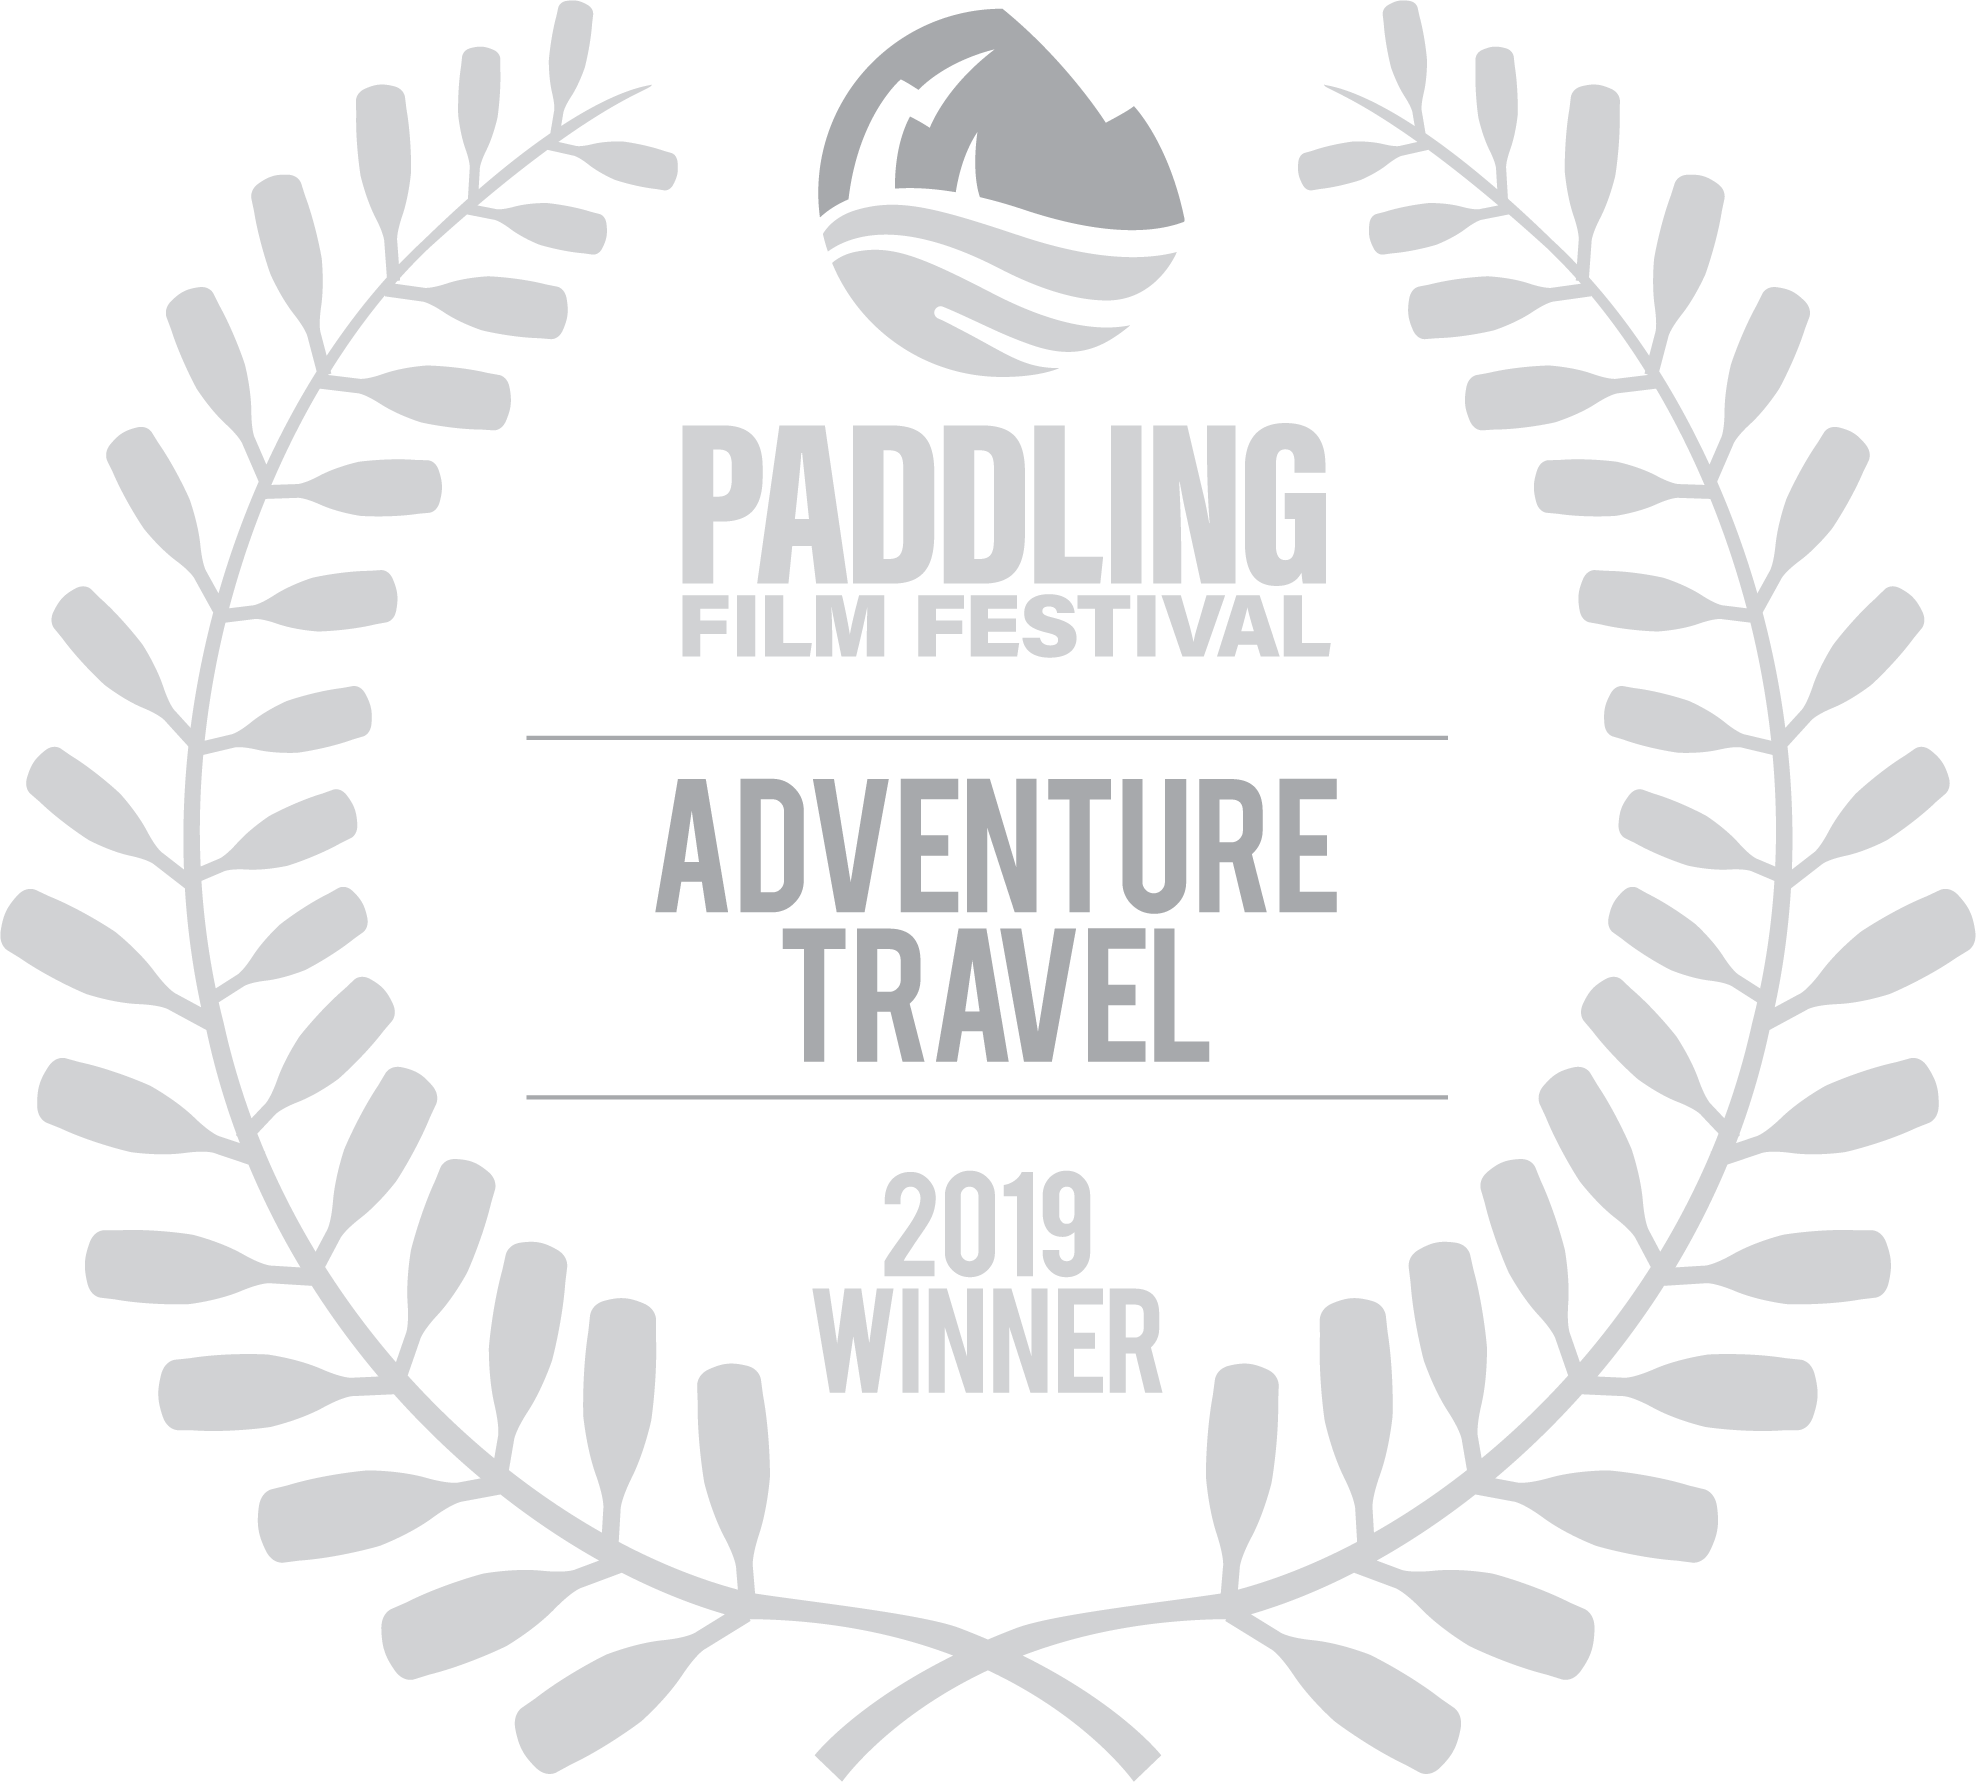 FoF Paddling Film Festival Laoural.png